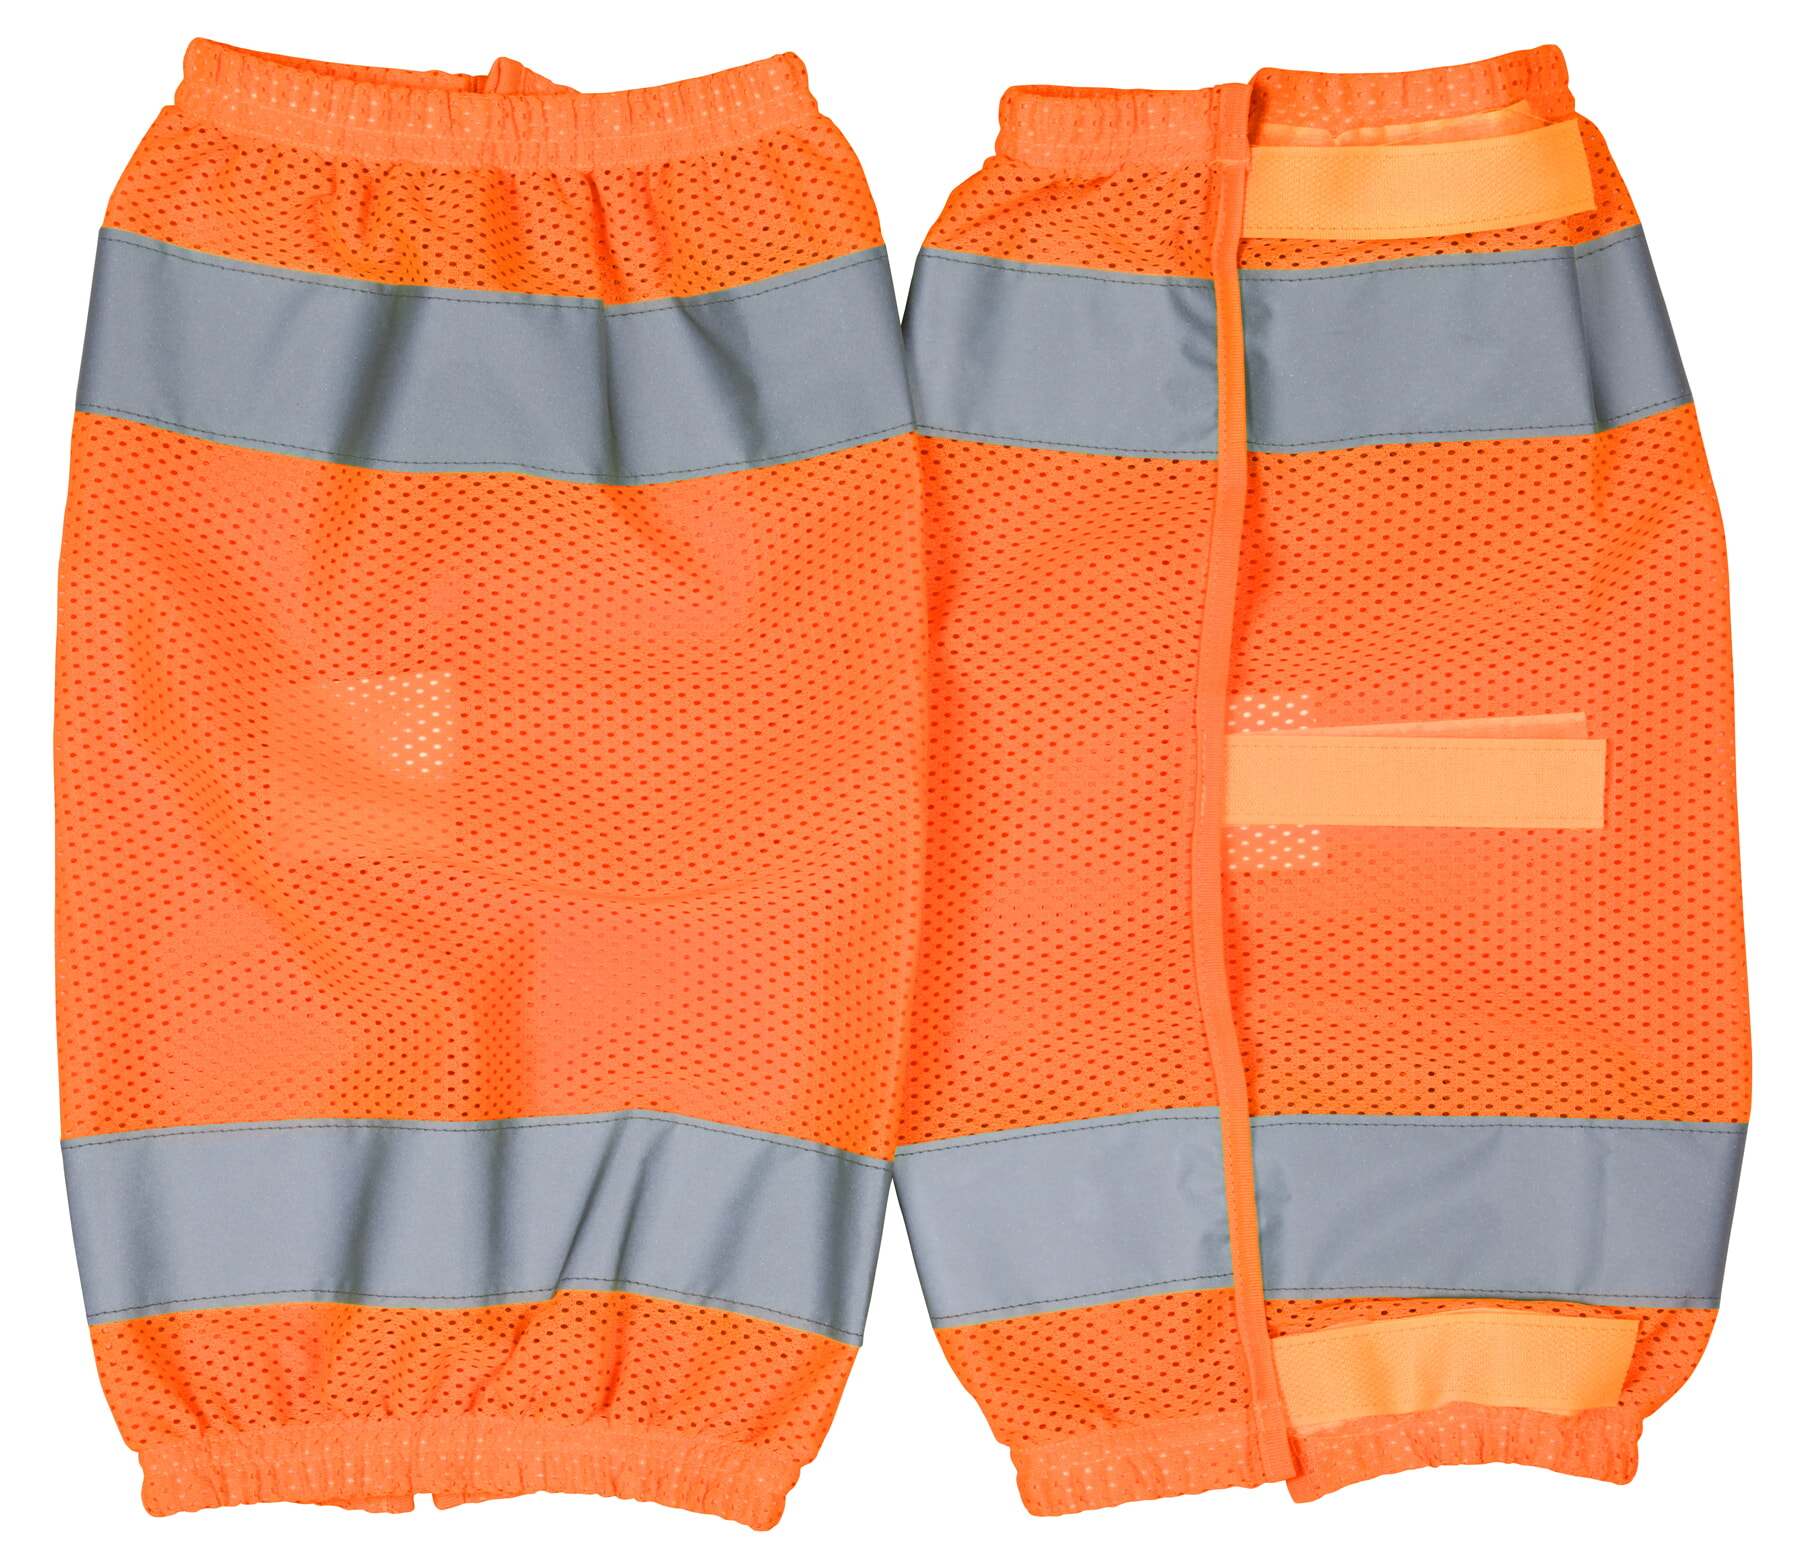 MCR River City CLEGMO CLASS E GAITERS, Mesh Orange  Adjustable